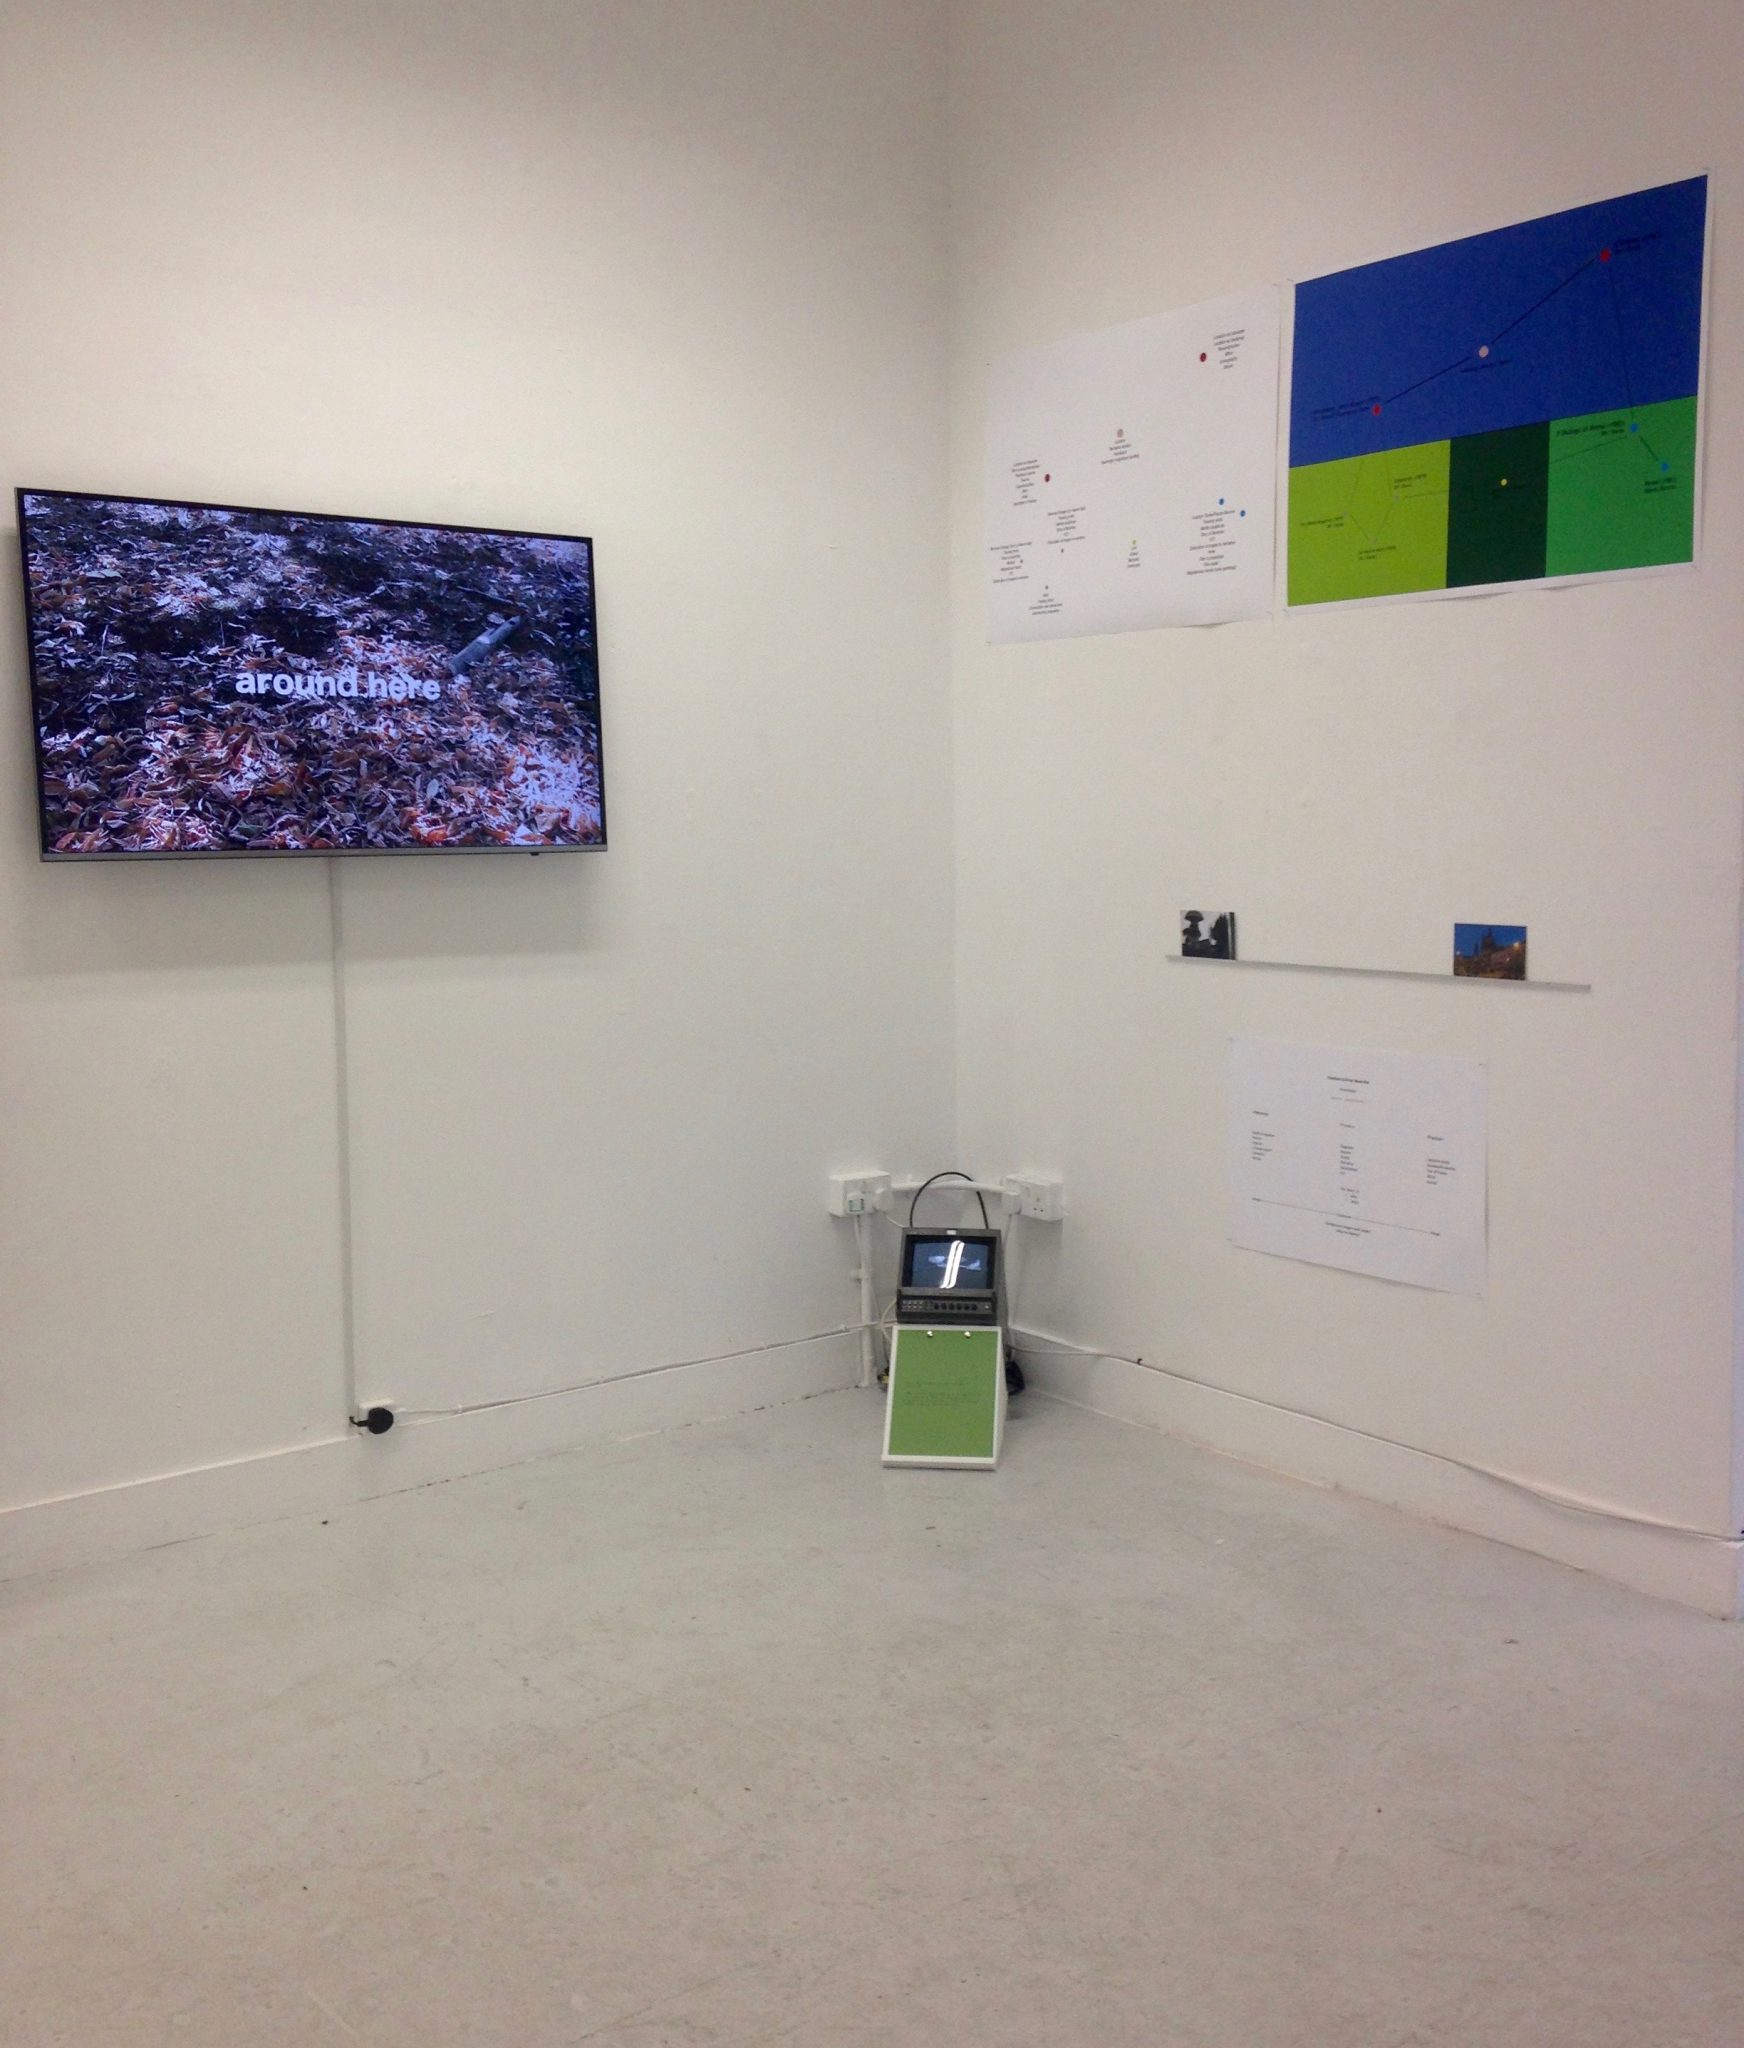 Exhibition view of Work Out by Gill Addison, video installation with printed matter.